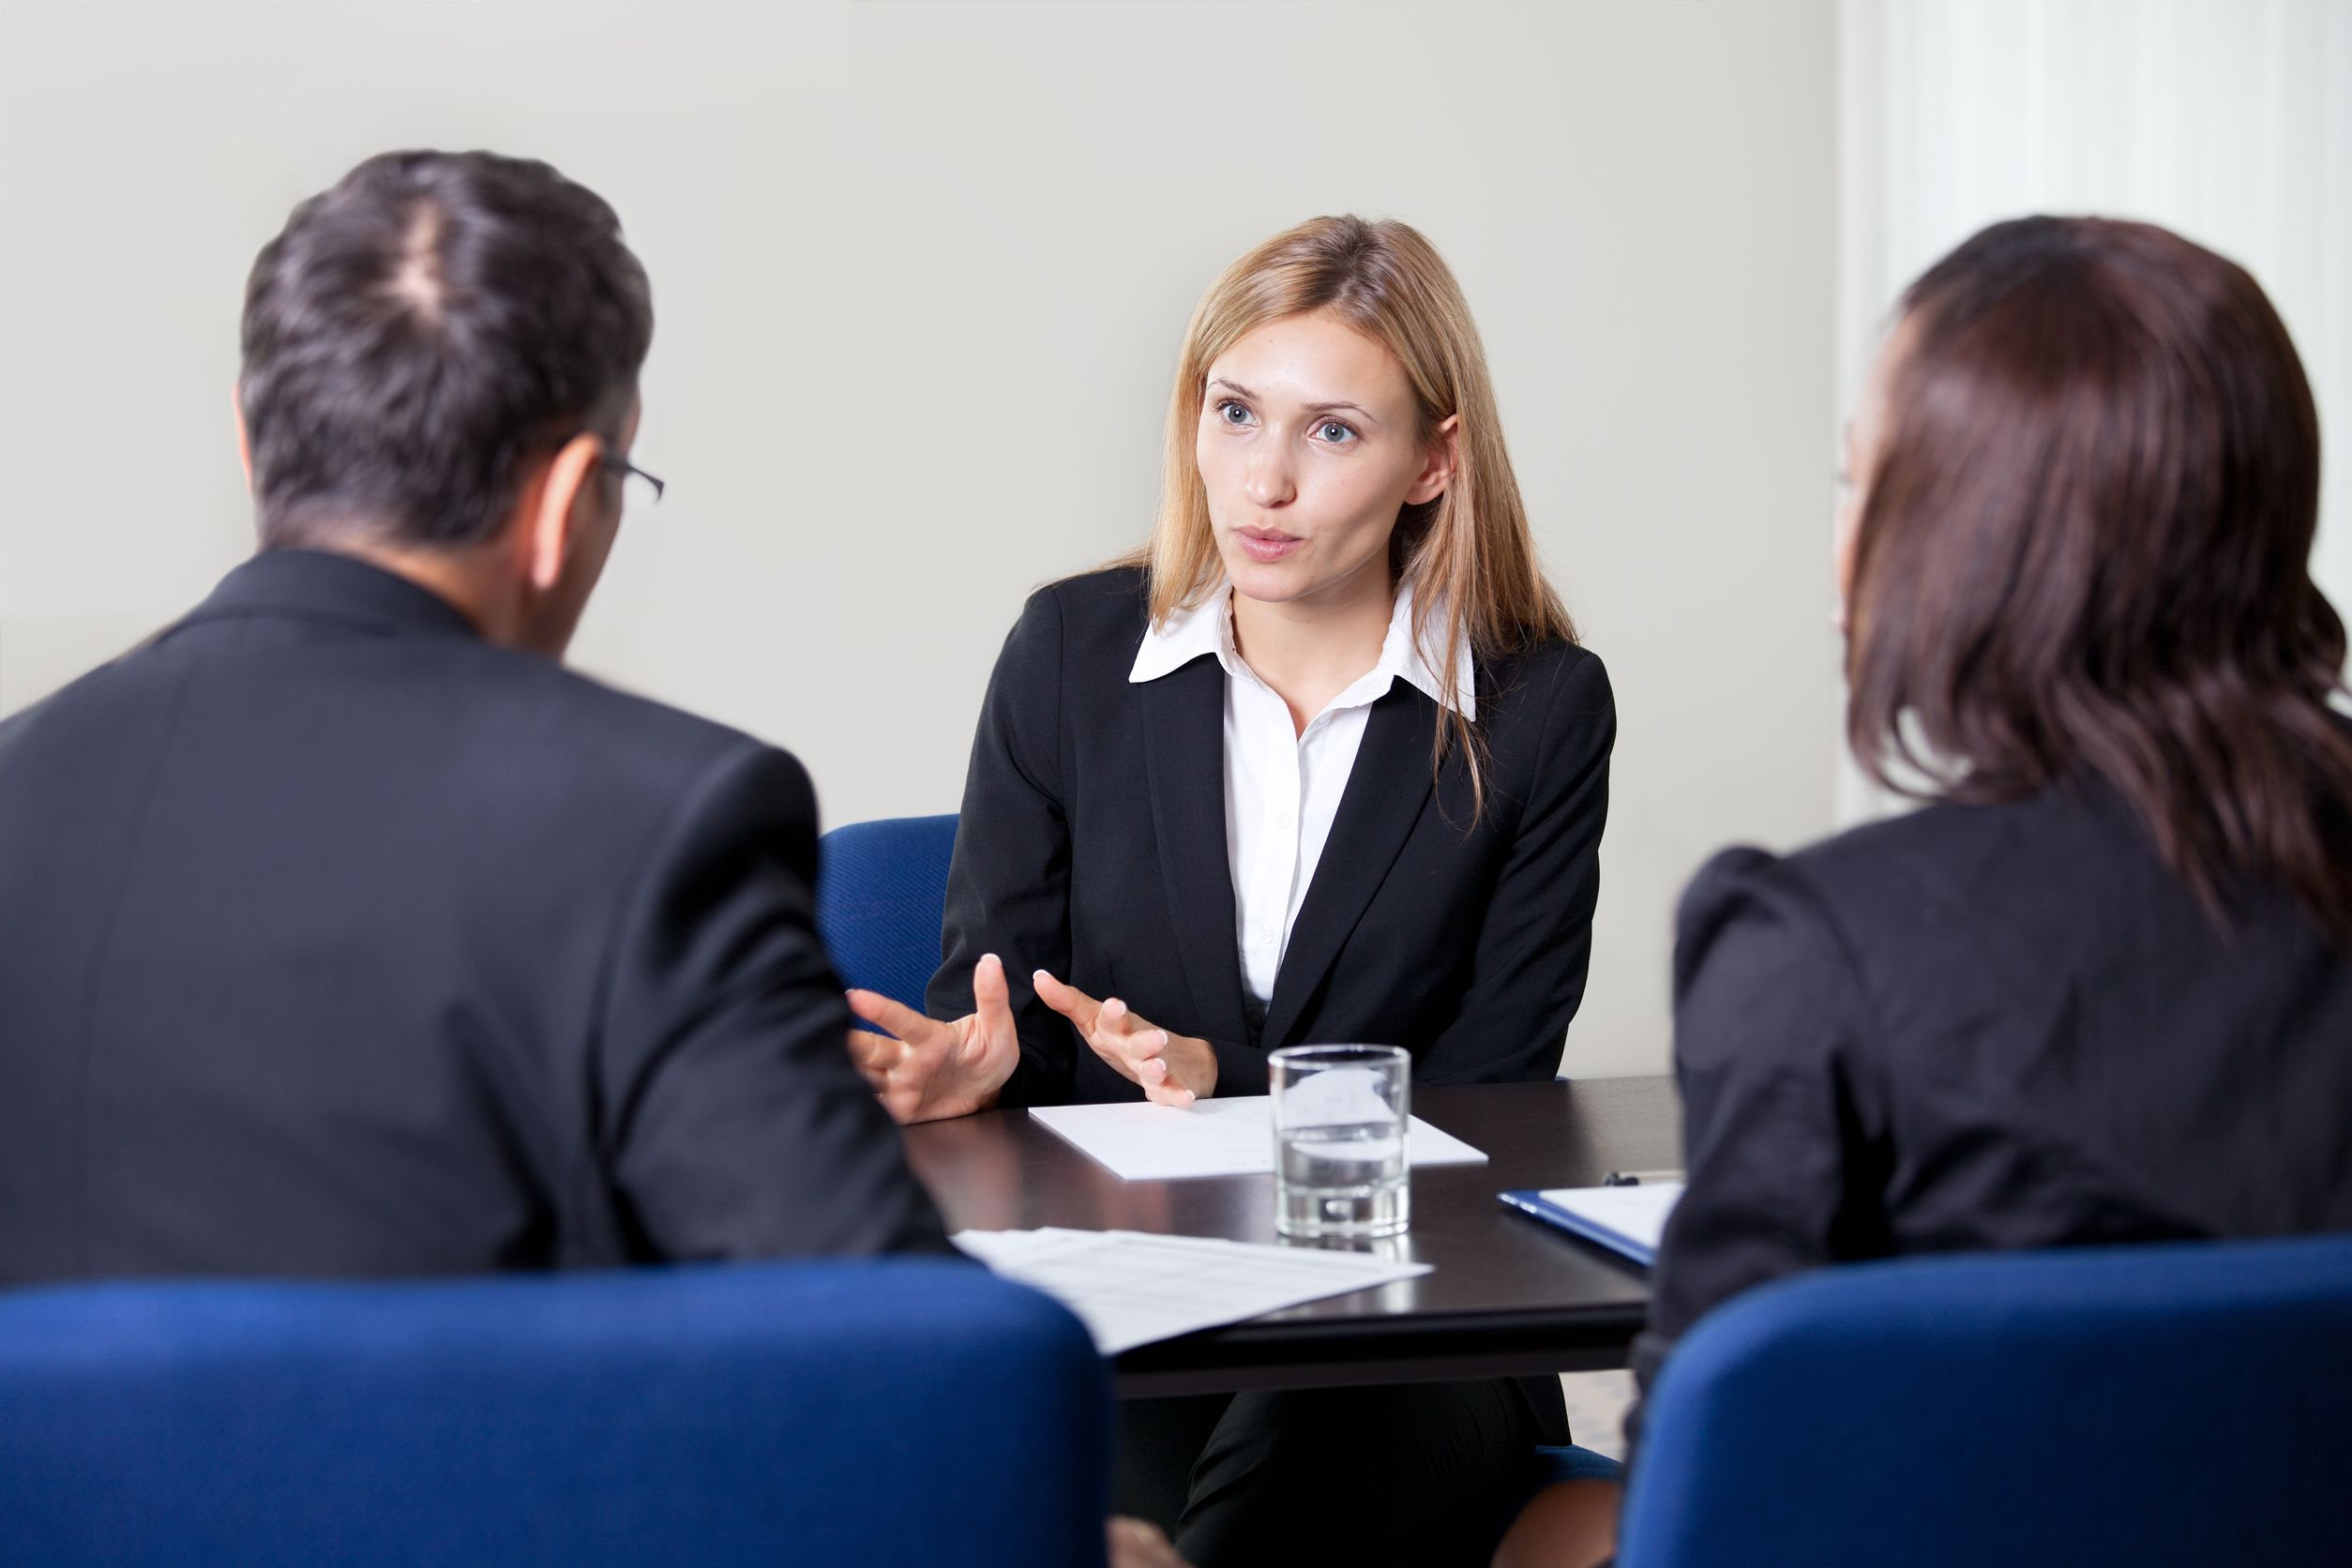 Do You Have An Exit Interview Plan? - Career Intelligence